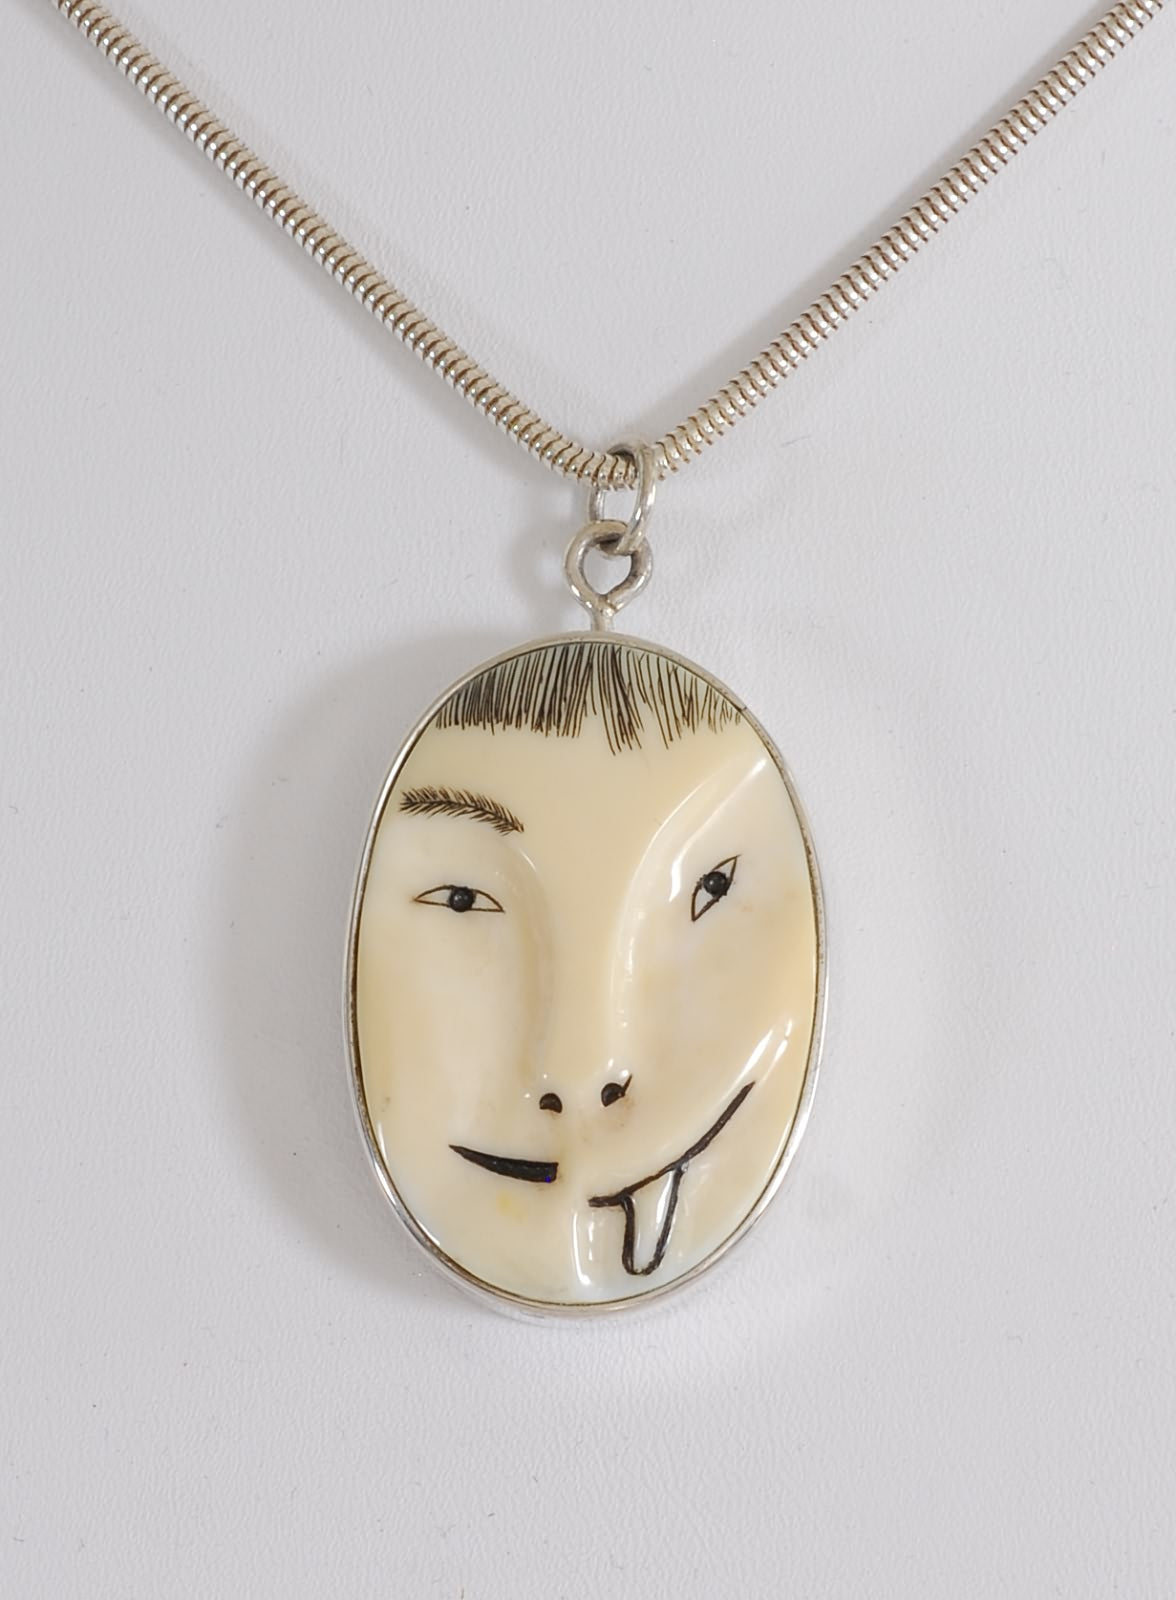 Half-Man Half-Animal Mask Pin/Pendant by Denise Wallace